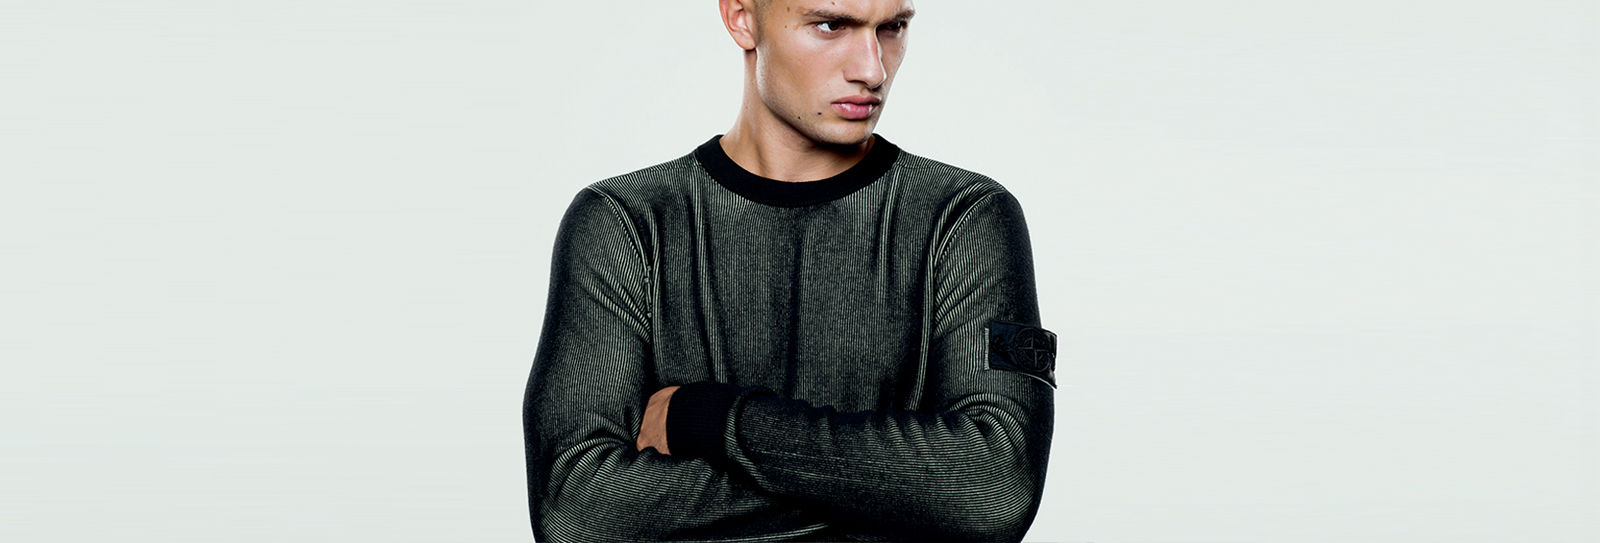 Model wearing dark colored crewneck sweater with the Stone Island Shadow badge on the upper left arm.